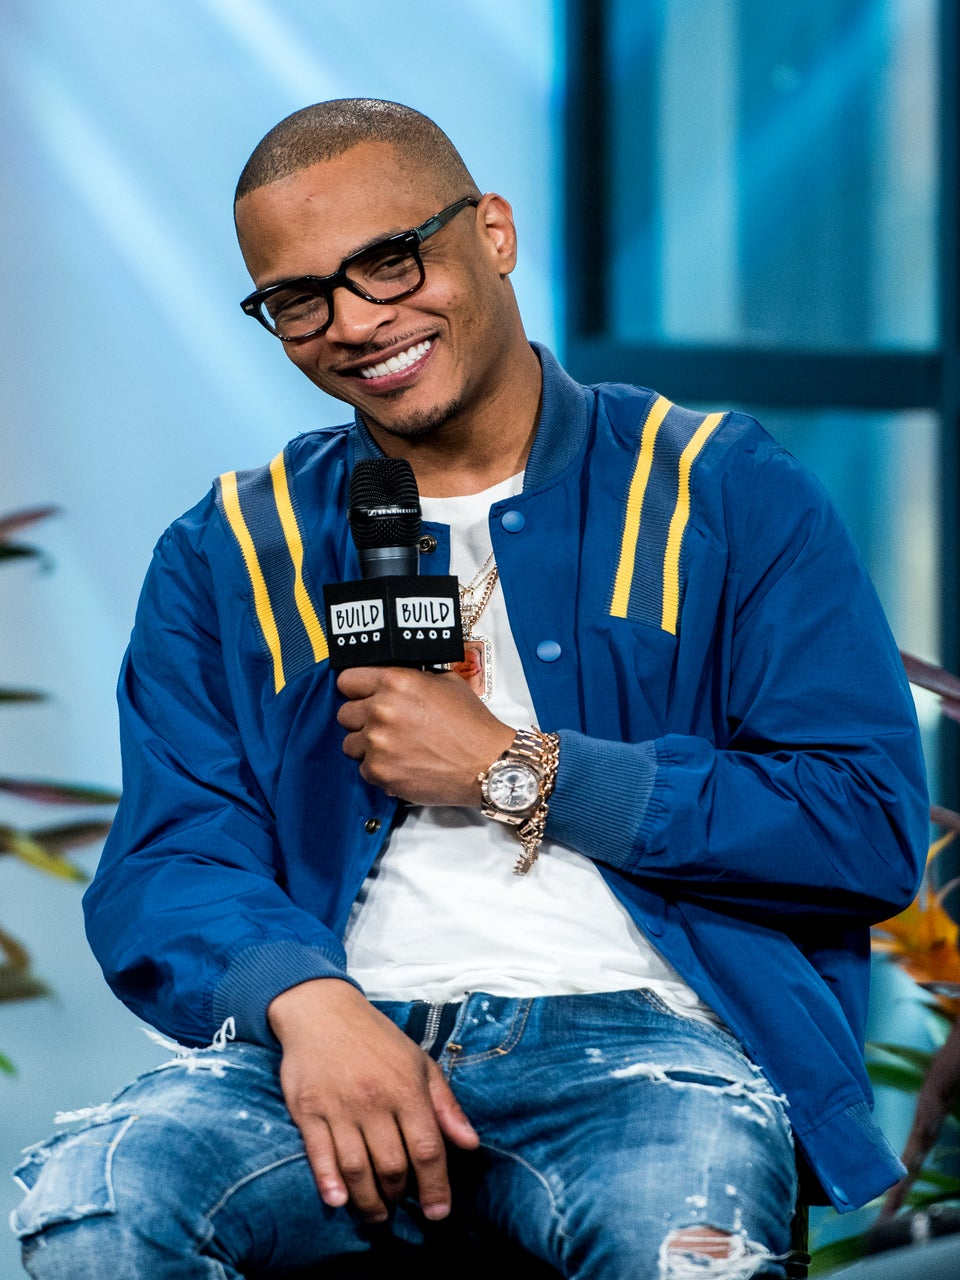 The Quick Read: T.I. Gives Away 300 Tickets To 'Black Panther' Premiere In Atlanta